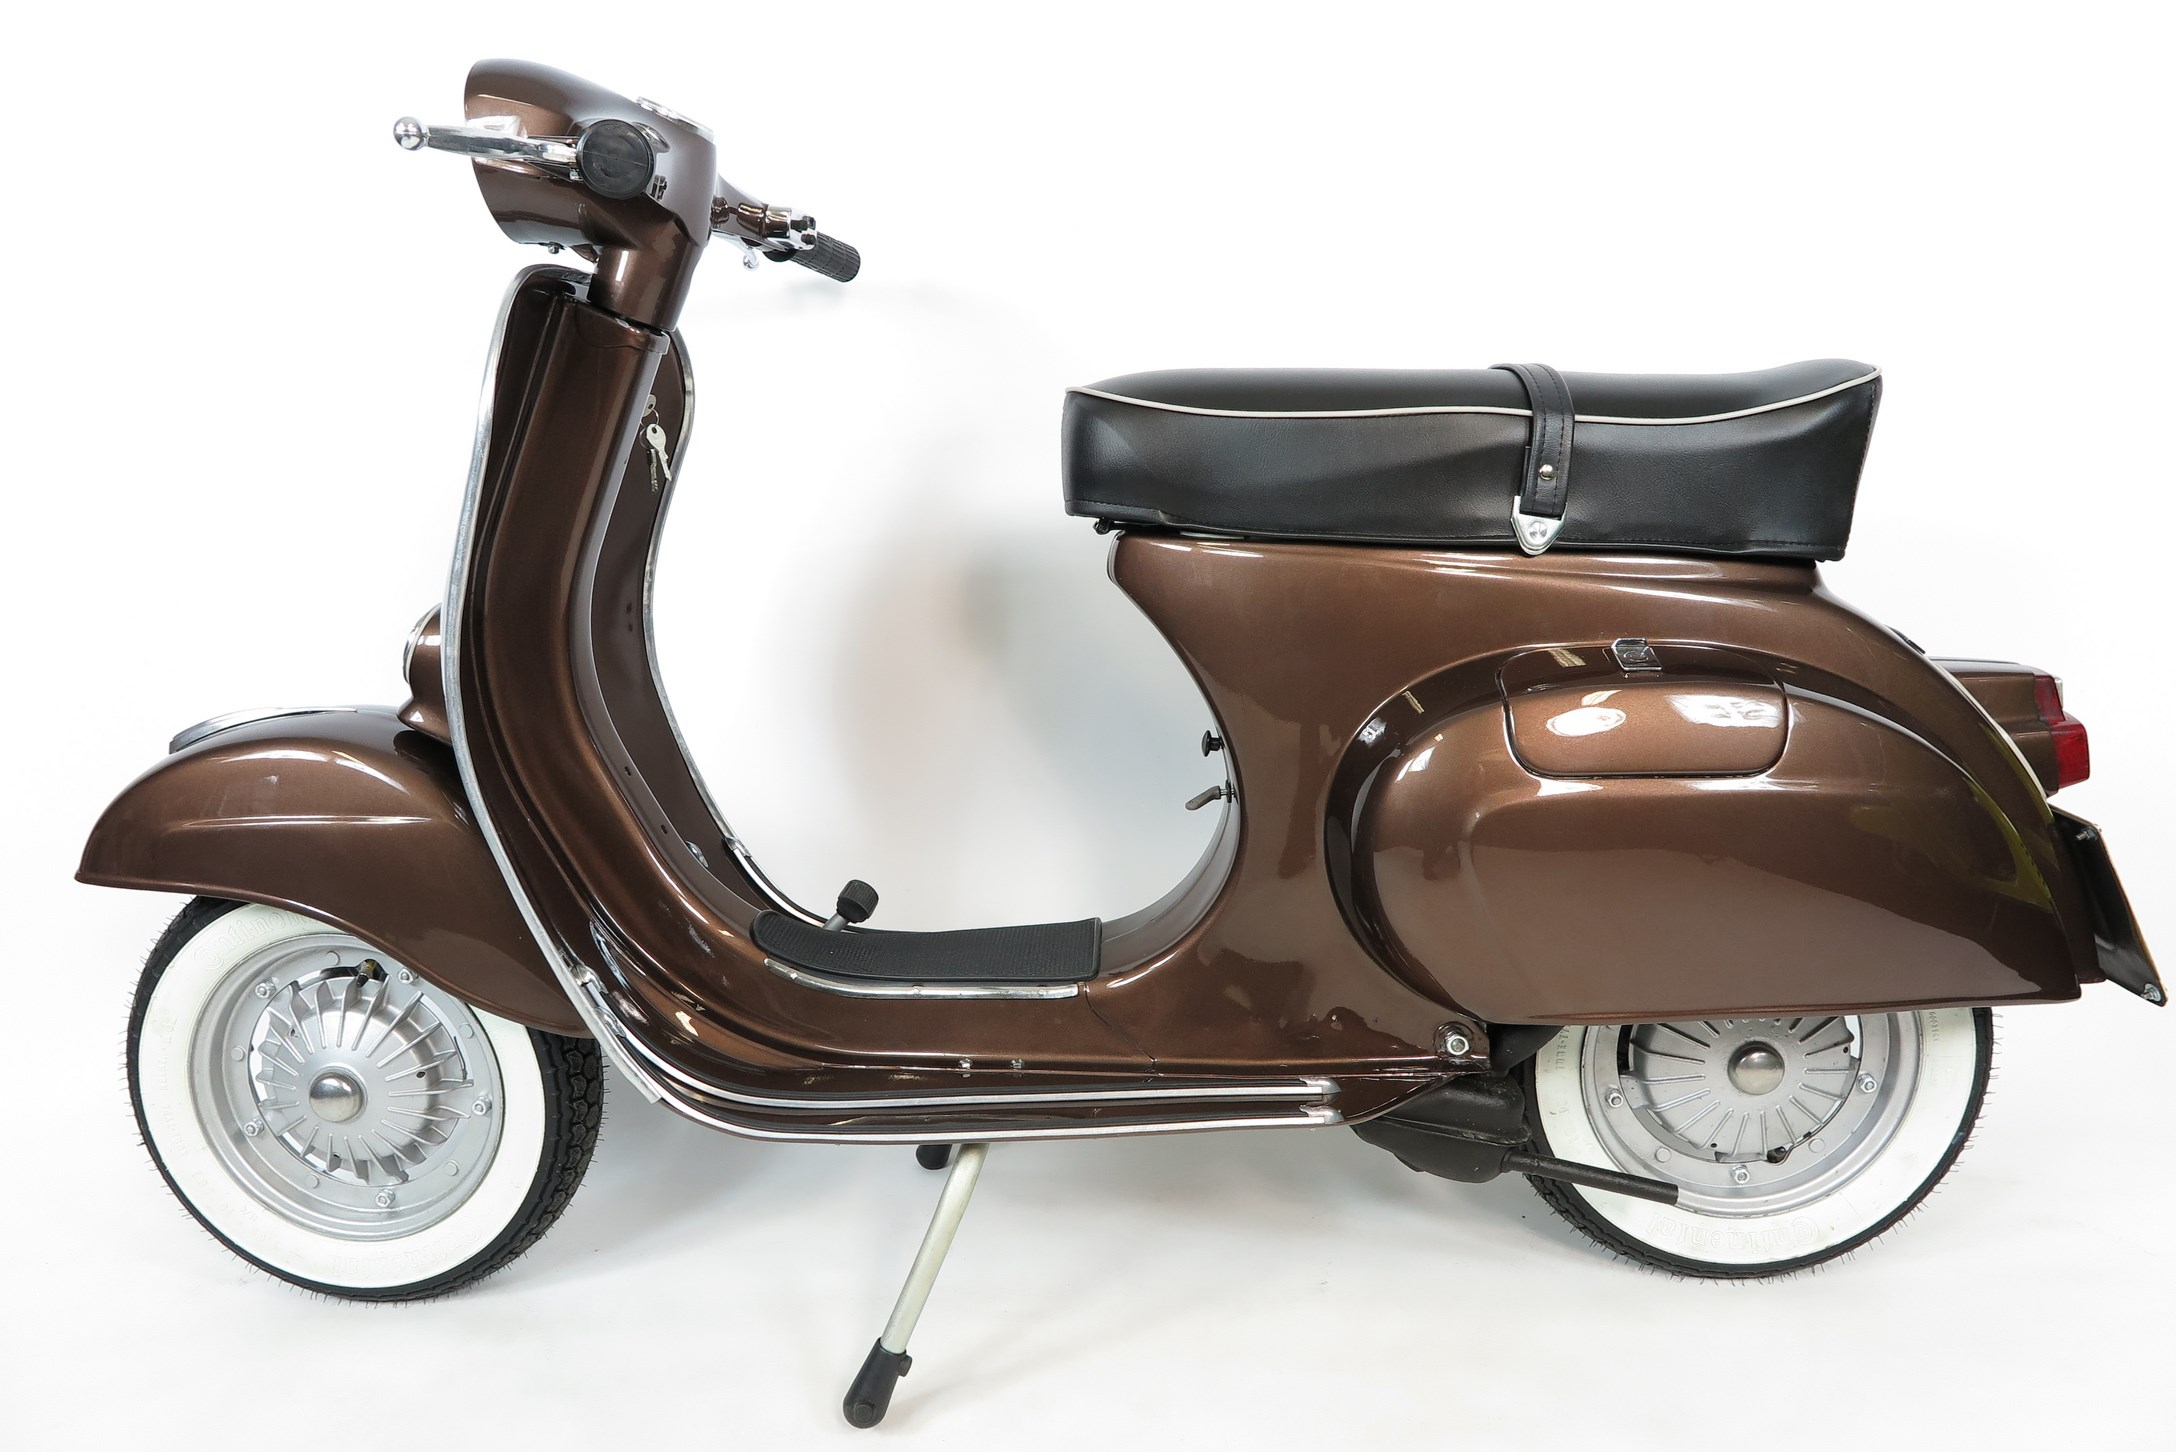 vespa 125 primavera top restauriert vespa4ever. Black Bedroom Furniture Sets. Home Design Ideas